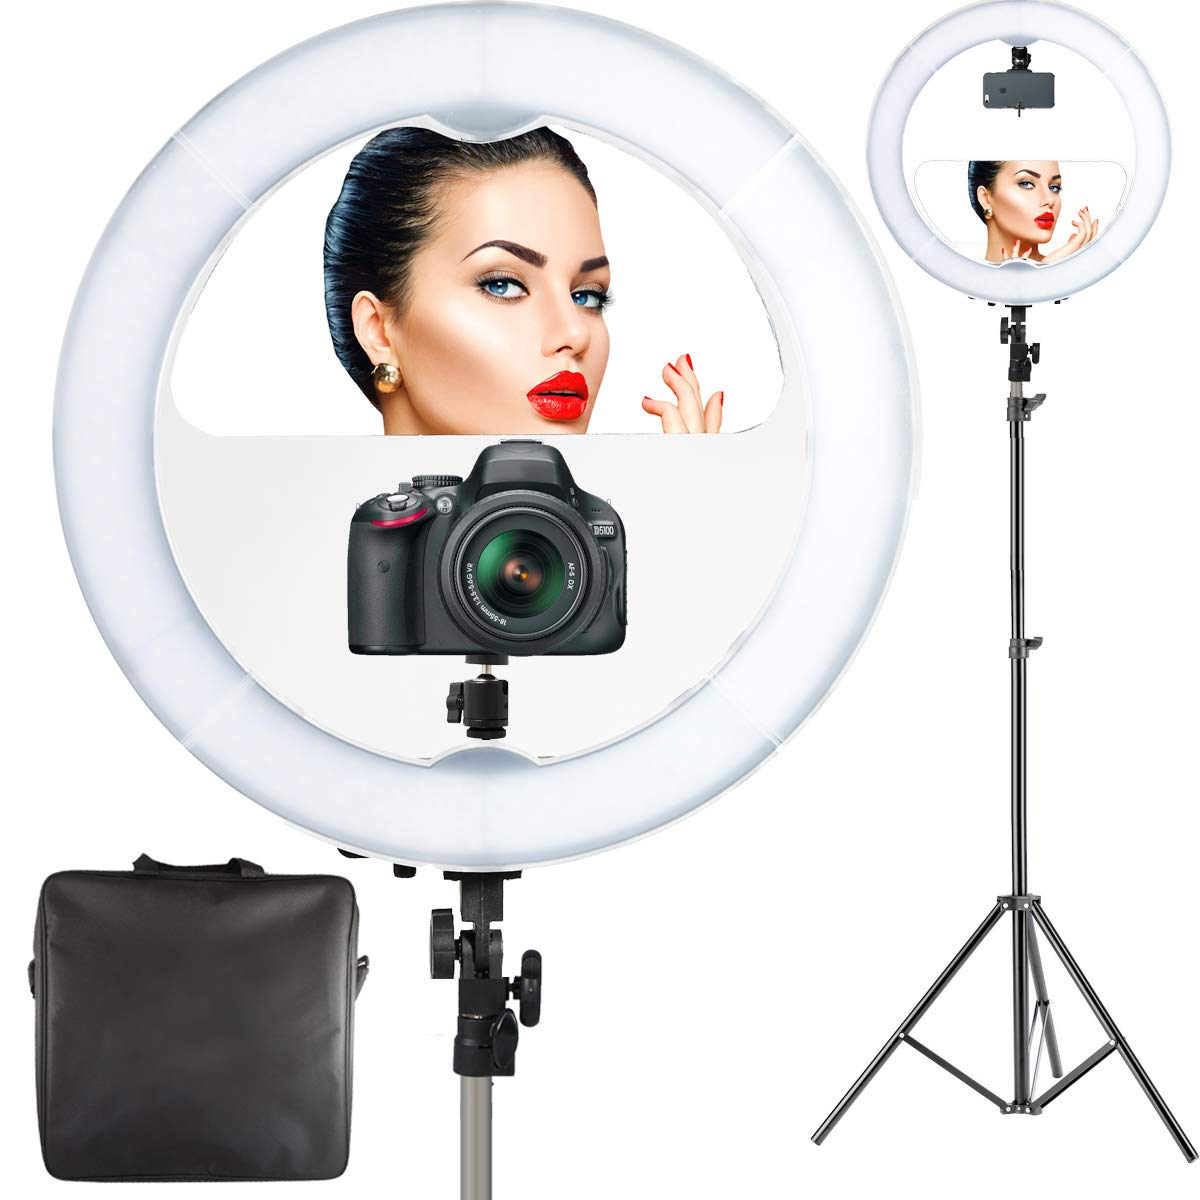 18 Led Video Ring Light With Mirror 6ft Stand Tripod Tiny Efficient High Power Camera Flash Solutions For Cell Phone Adjustable Heavy Duty Mount Dslr Iphone Android Smartphones Professional